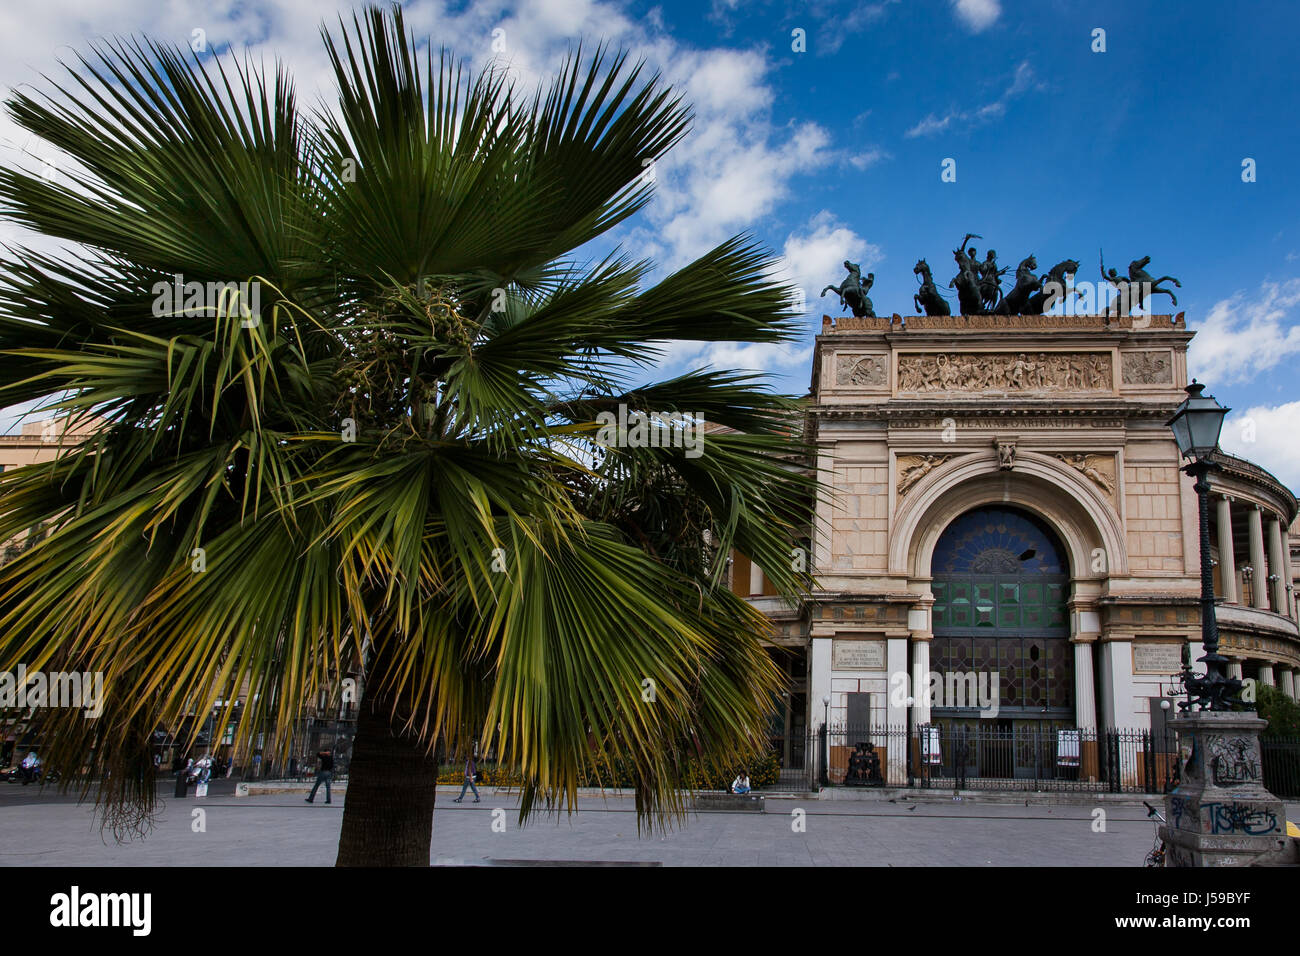 PALERMO, ITALY - October 14, 2009: The Politeama Garibaldi theater in Palermo, Sicily Stock Photo